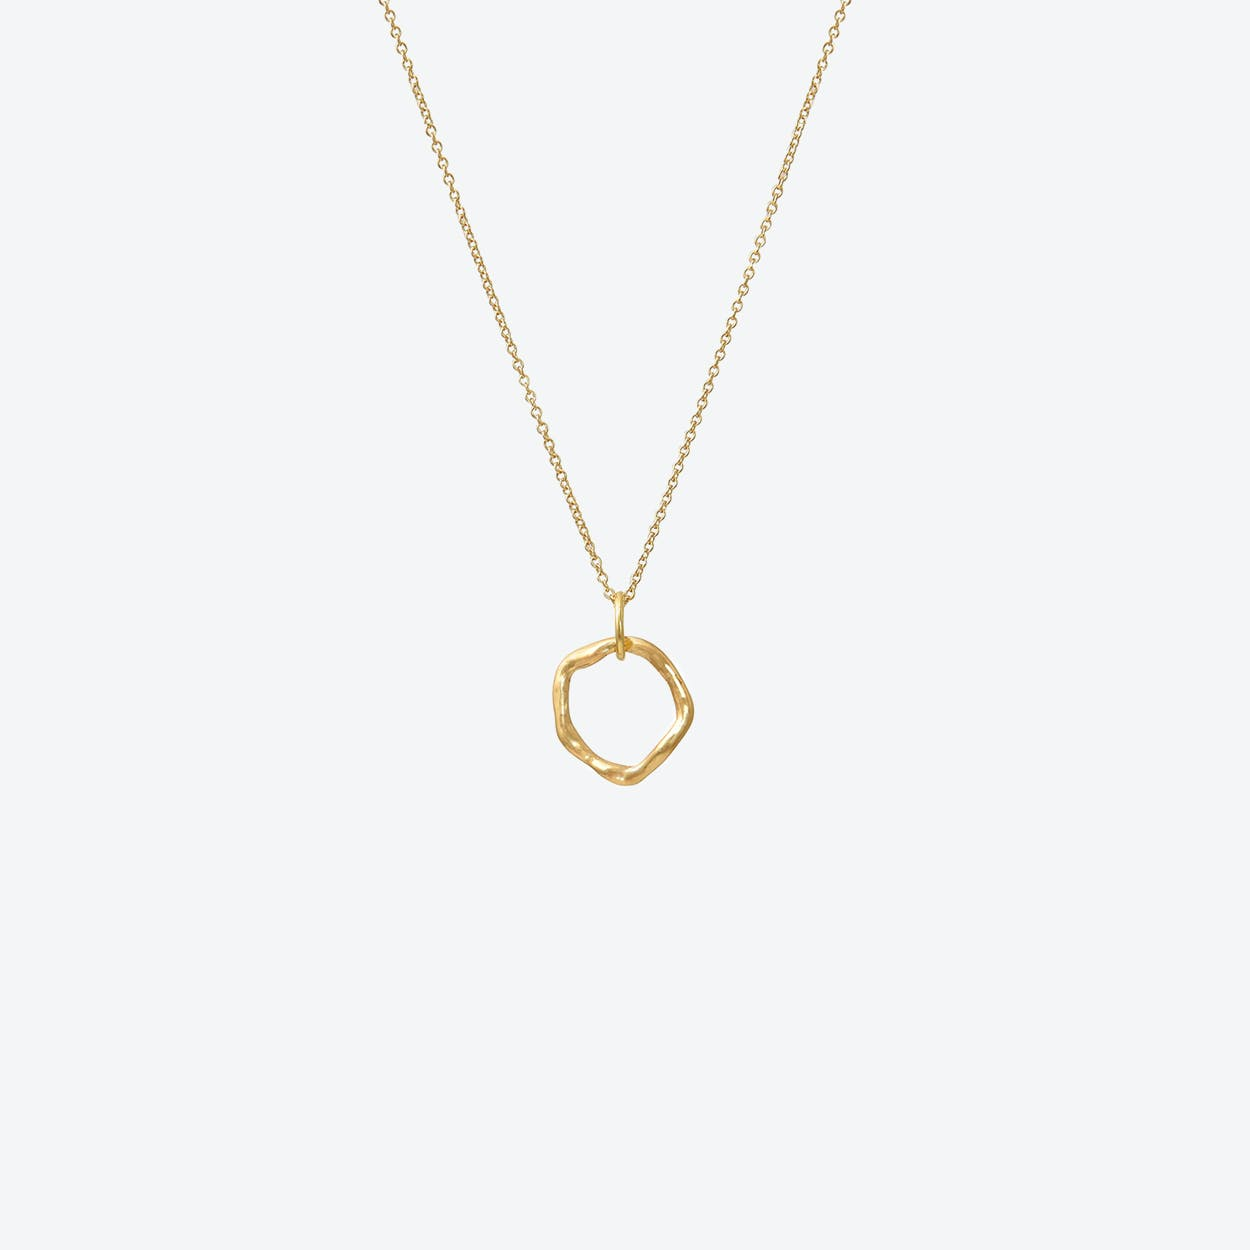 Gold Free Formed Circle Pendant